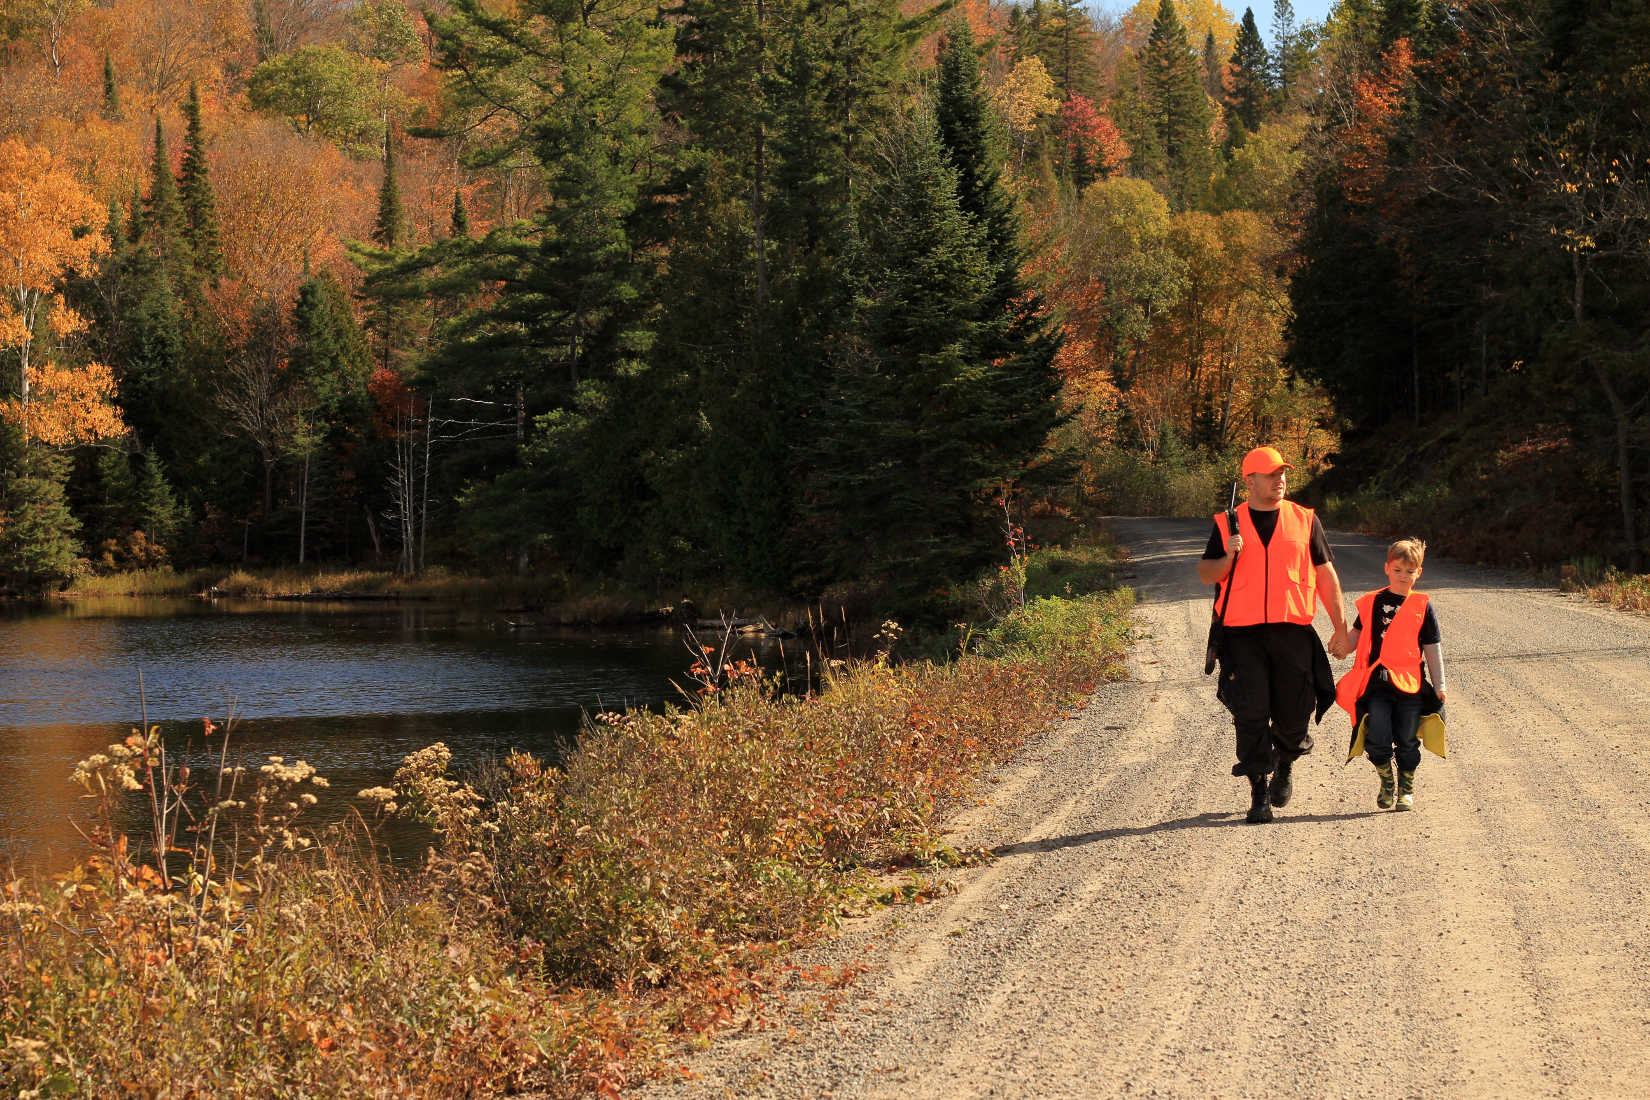 Hunting Season Is Approaching: Here's How to Share Your Passion for the Outdoors